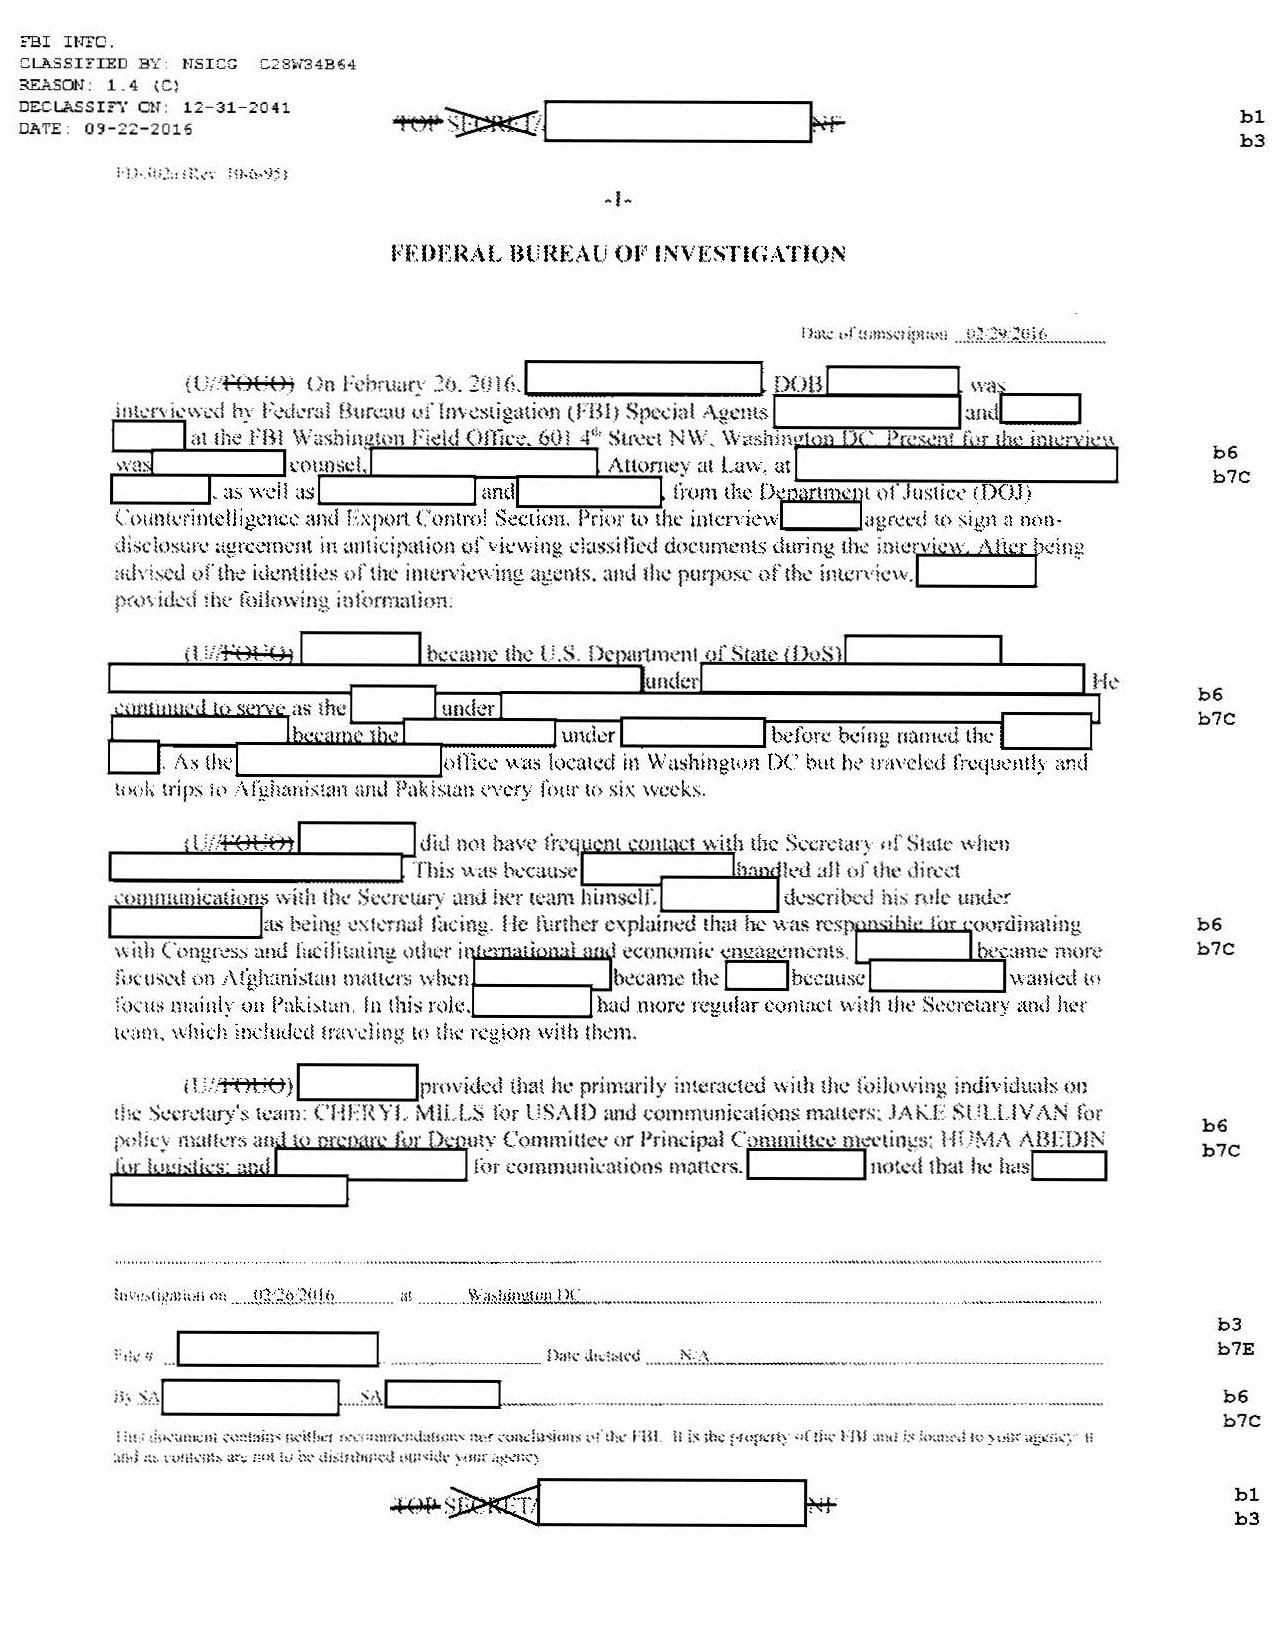 fbi interview notes from hillary clinton e mail investigation for